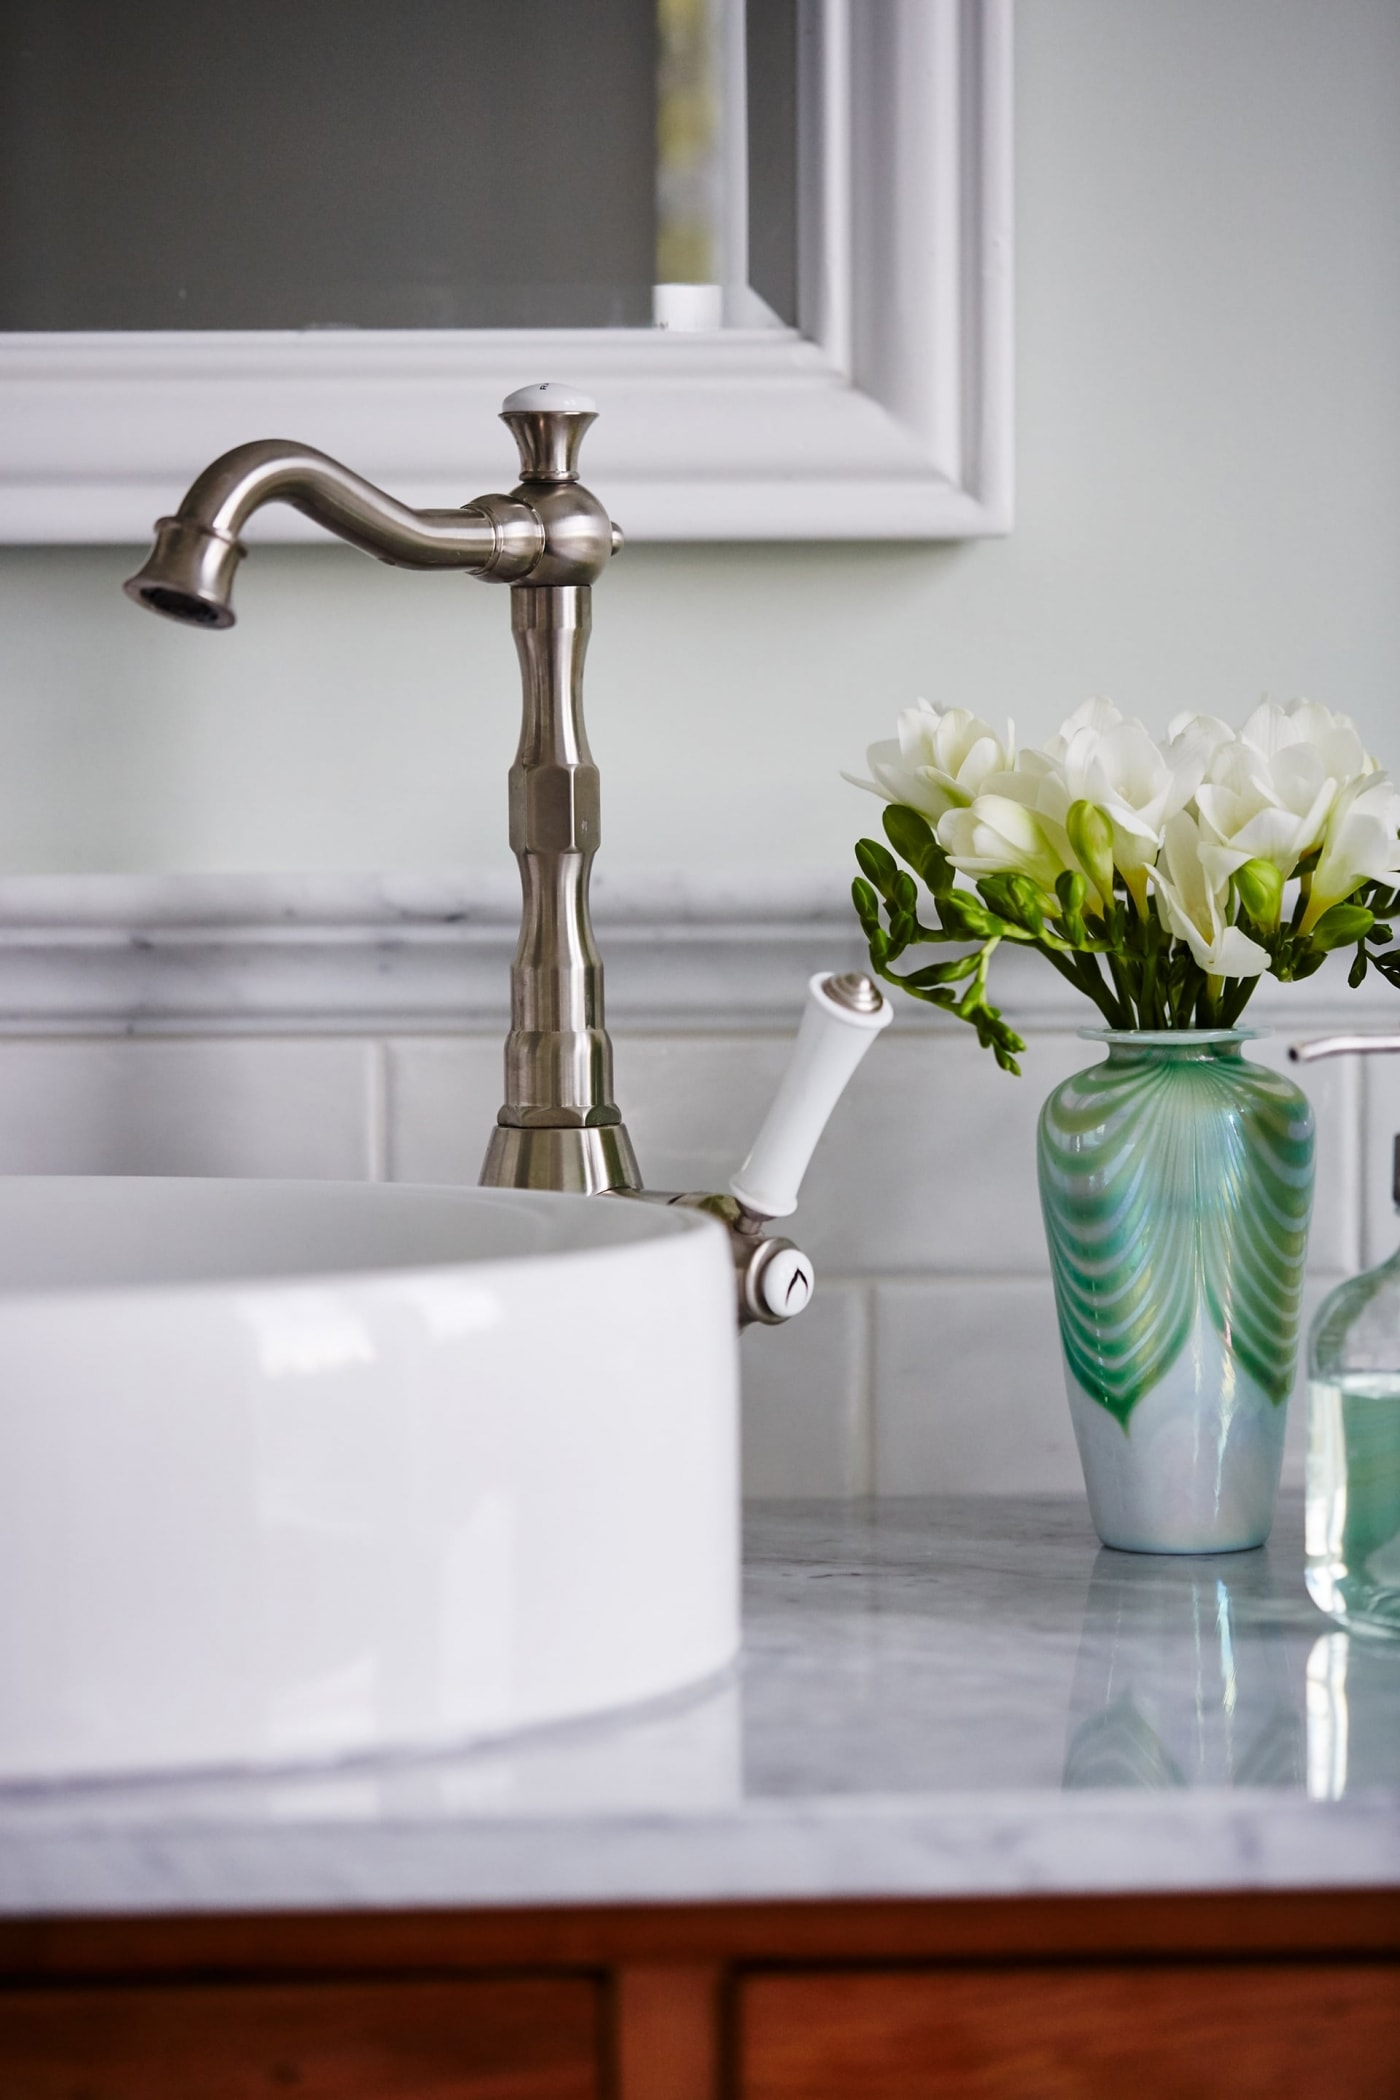 Detail of vessel sink and faucet in marble bathroom designed by Sarah Richardson - Sarah off the Grid